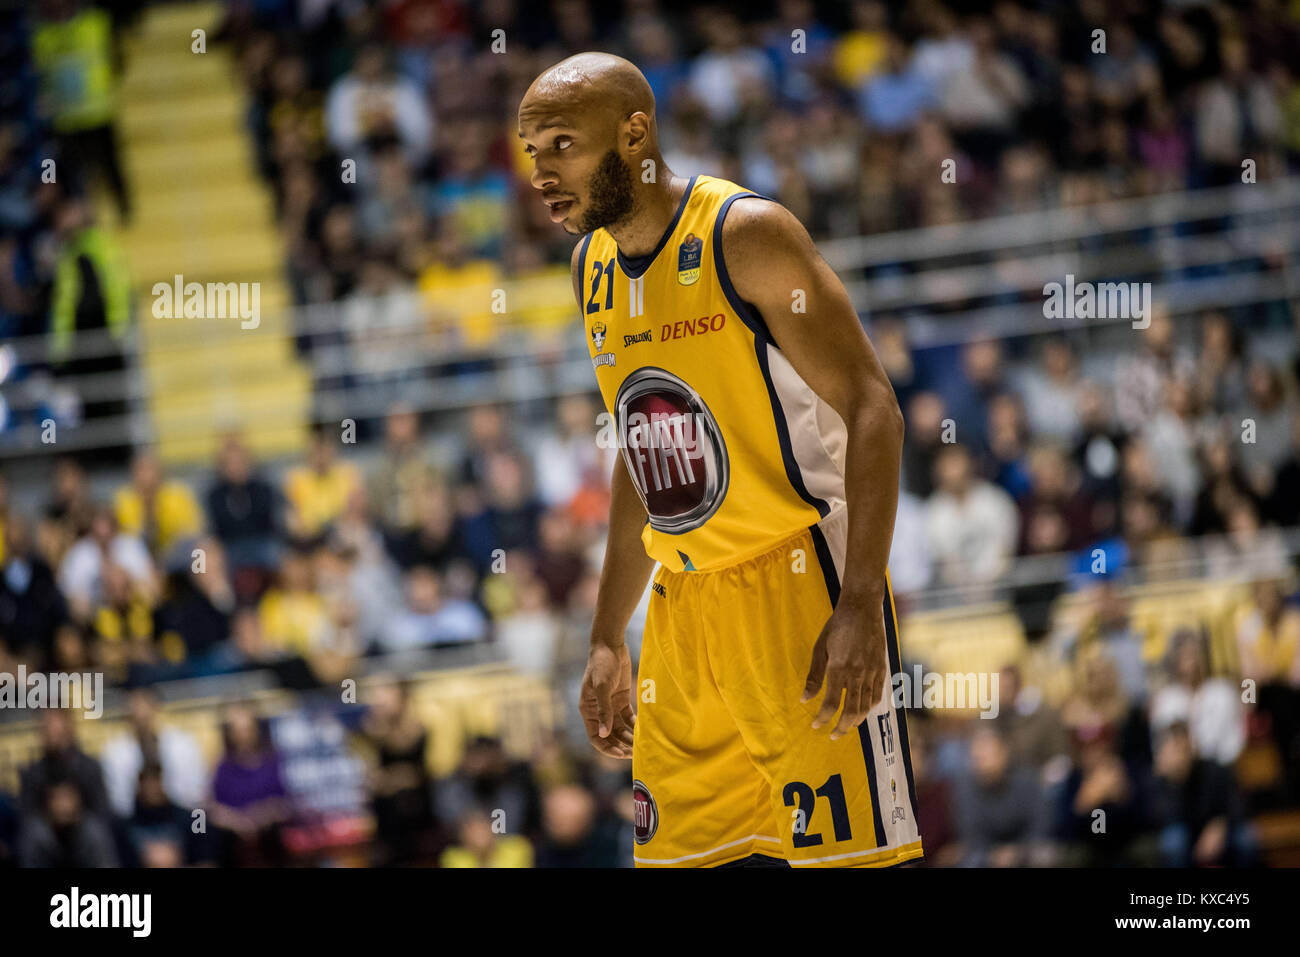 Turin, Italy. 07th Jan, 2018. Andre Jones (Fiat Torino Auxilium) during the Serie A Basketball Match Fiat Torino Stock Photo